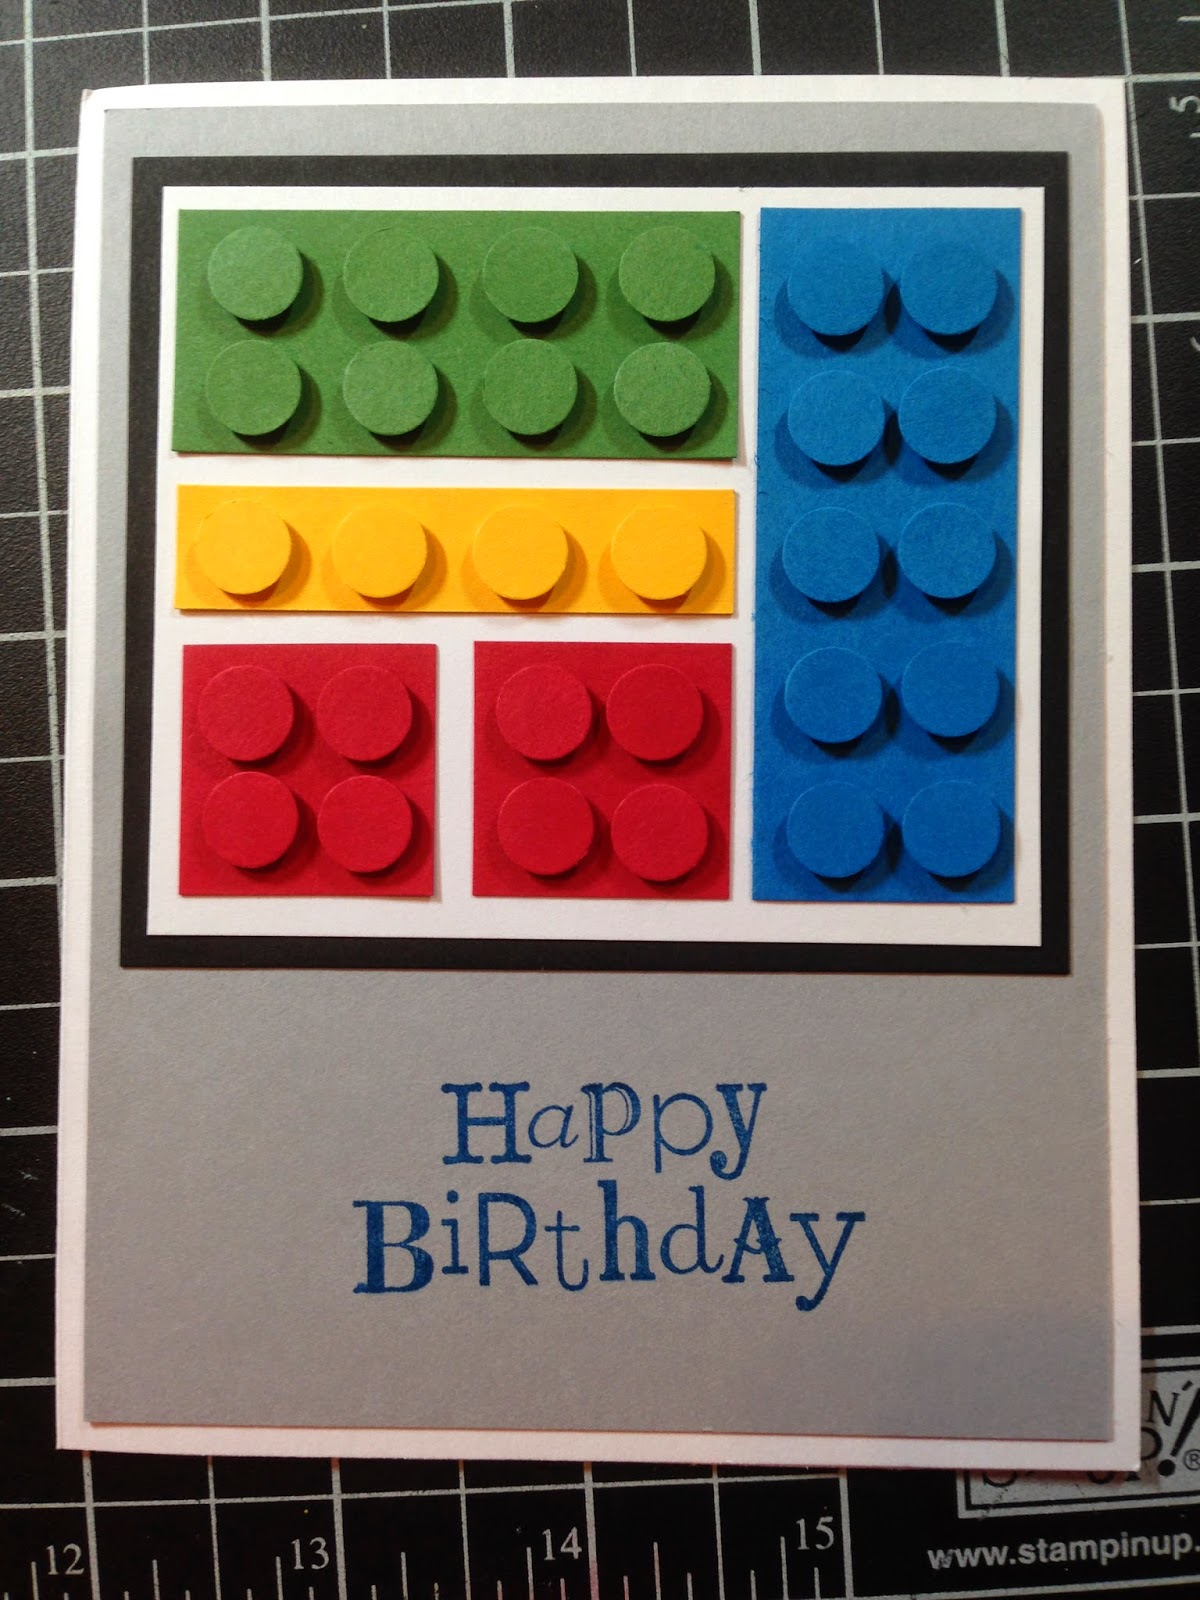 scrappingwest Lego Birthday Card – Lego Birthday Card